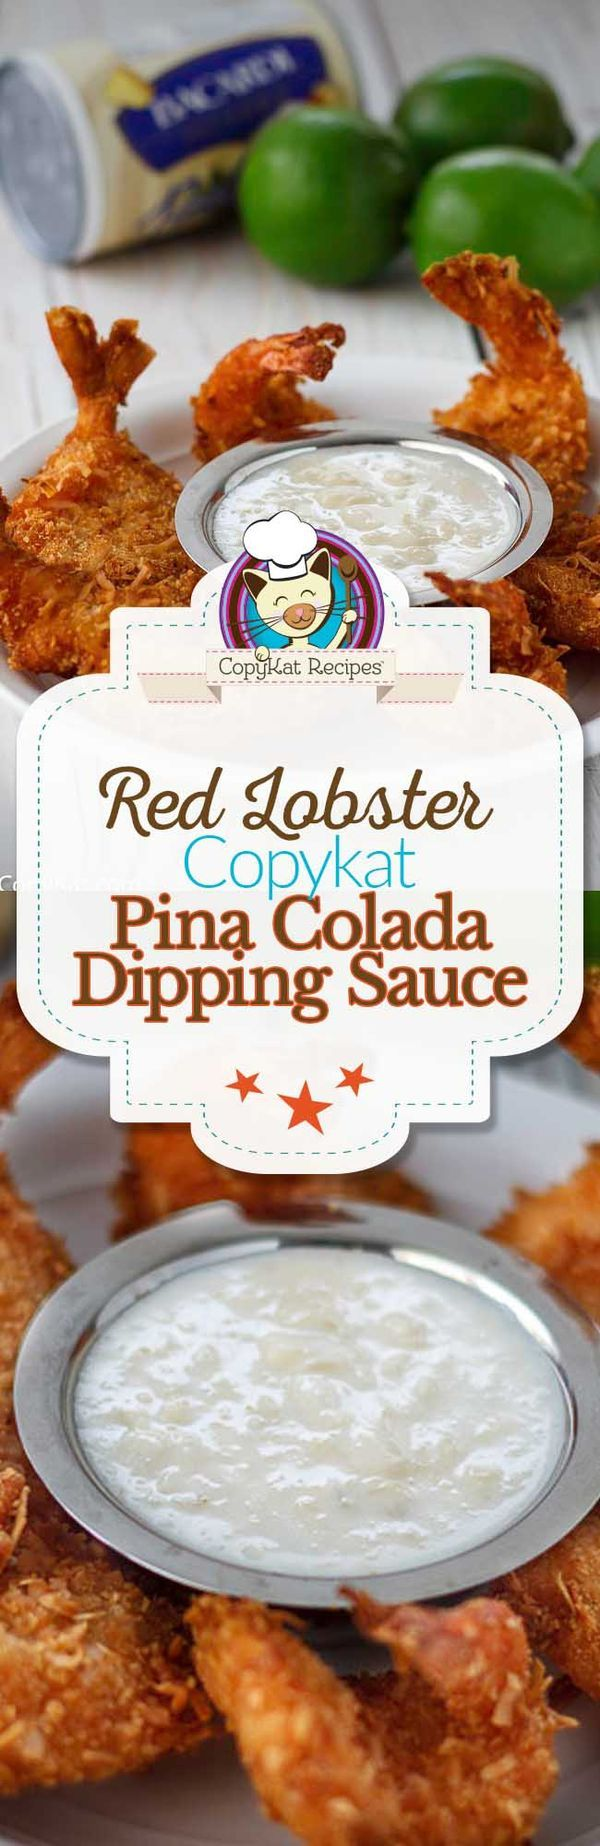 Love the Red Lobster restaurant?  Make their famous Pina Colada Dipping sauce at home with this easy copycat recipe.